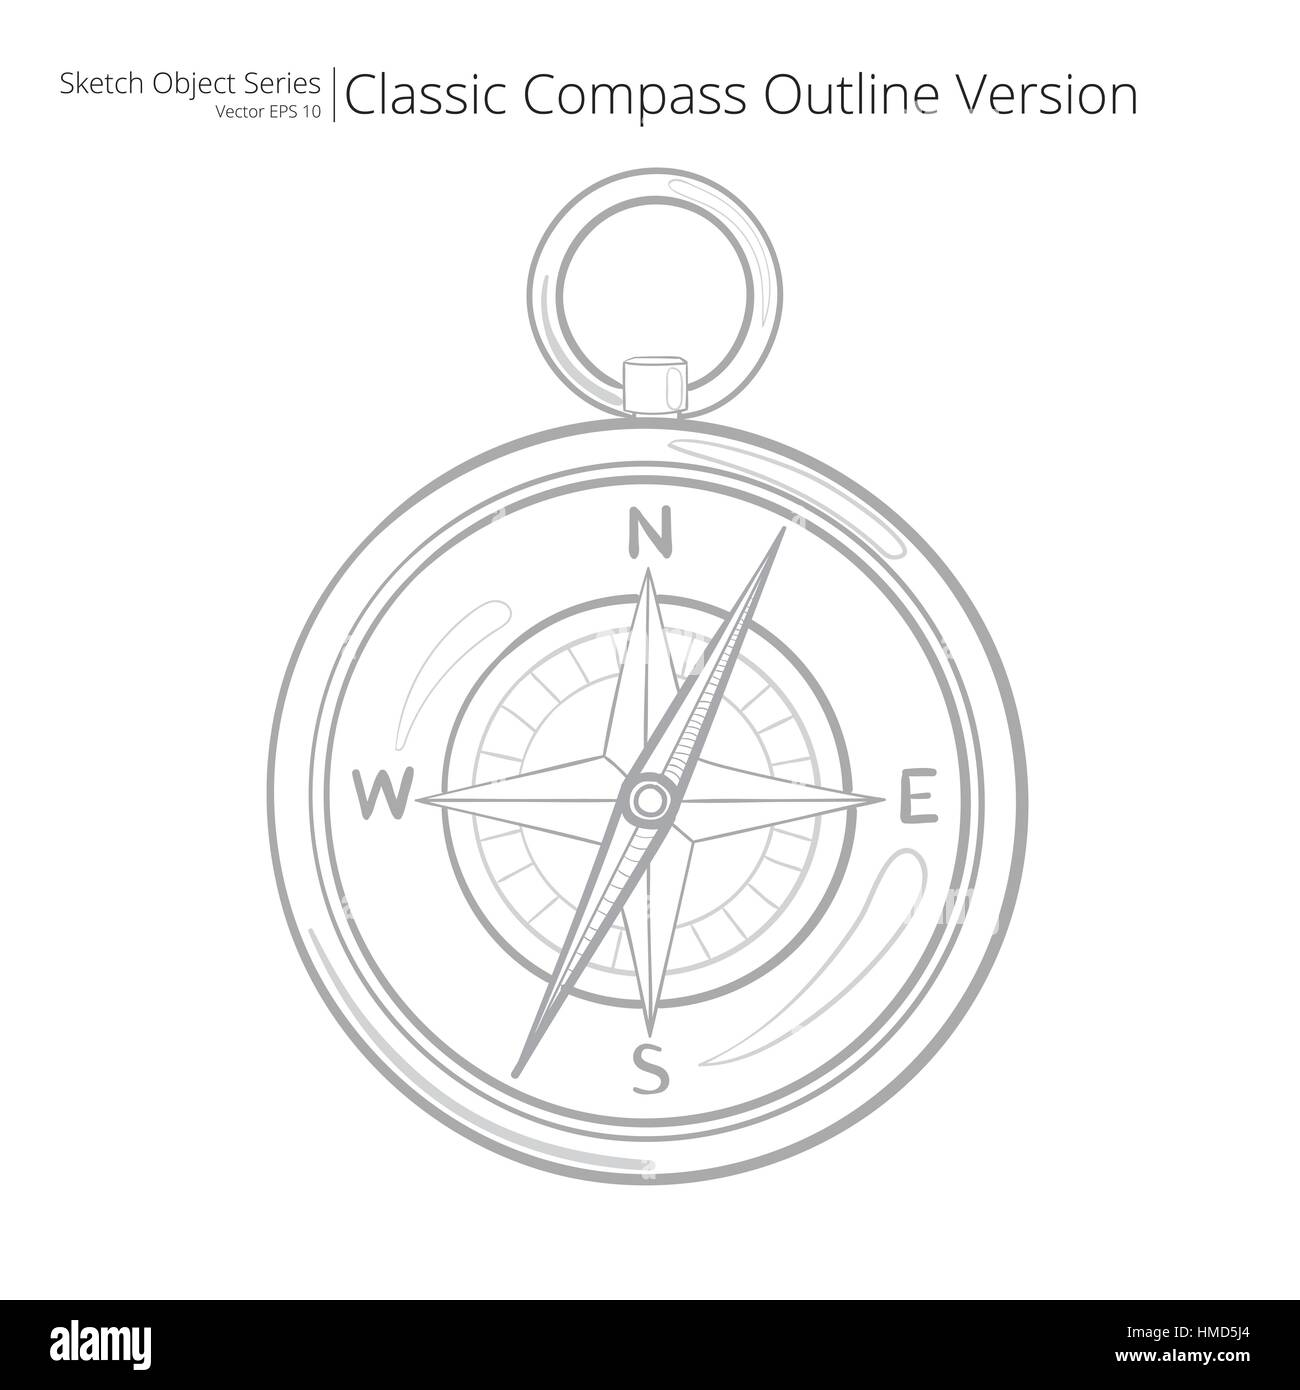 Sketch style Vector Illustration of a Compass. Outline Version. - Stock Image